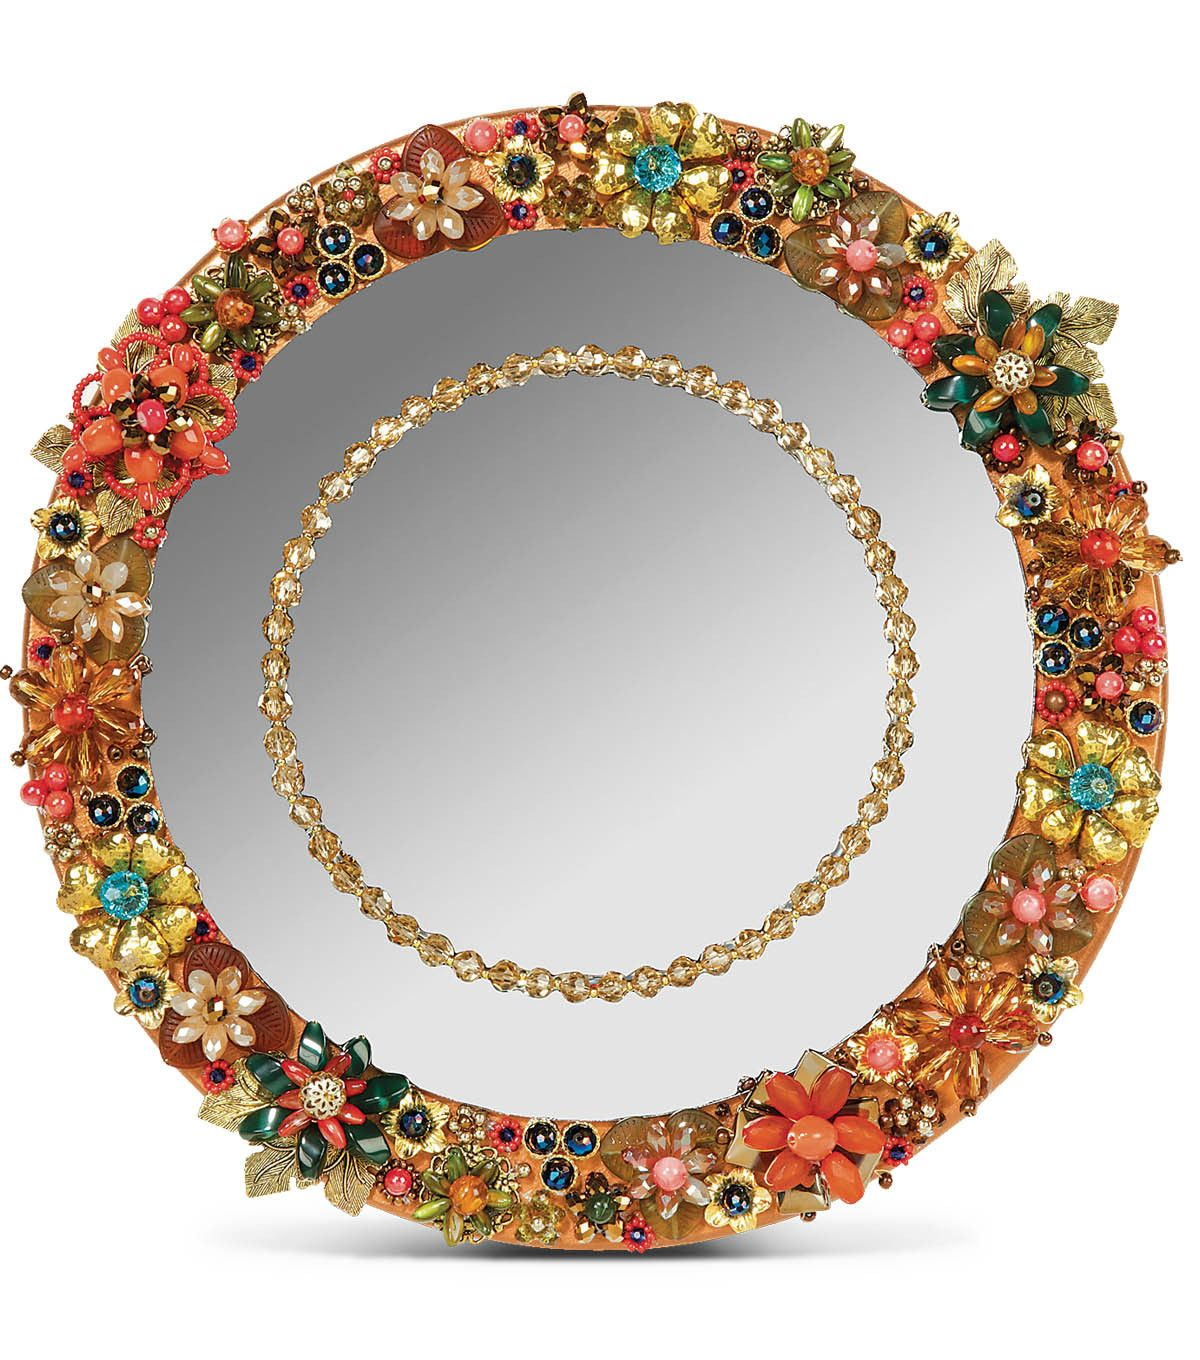 Beautiful Mirrors love this #diy jeweled mirror! would make beautiful wall decor in